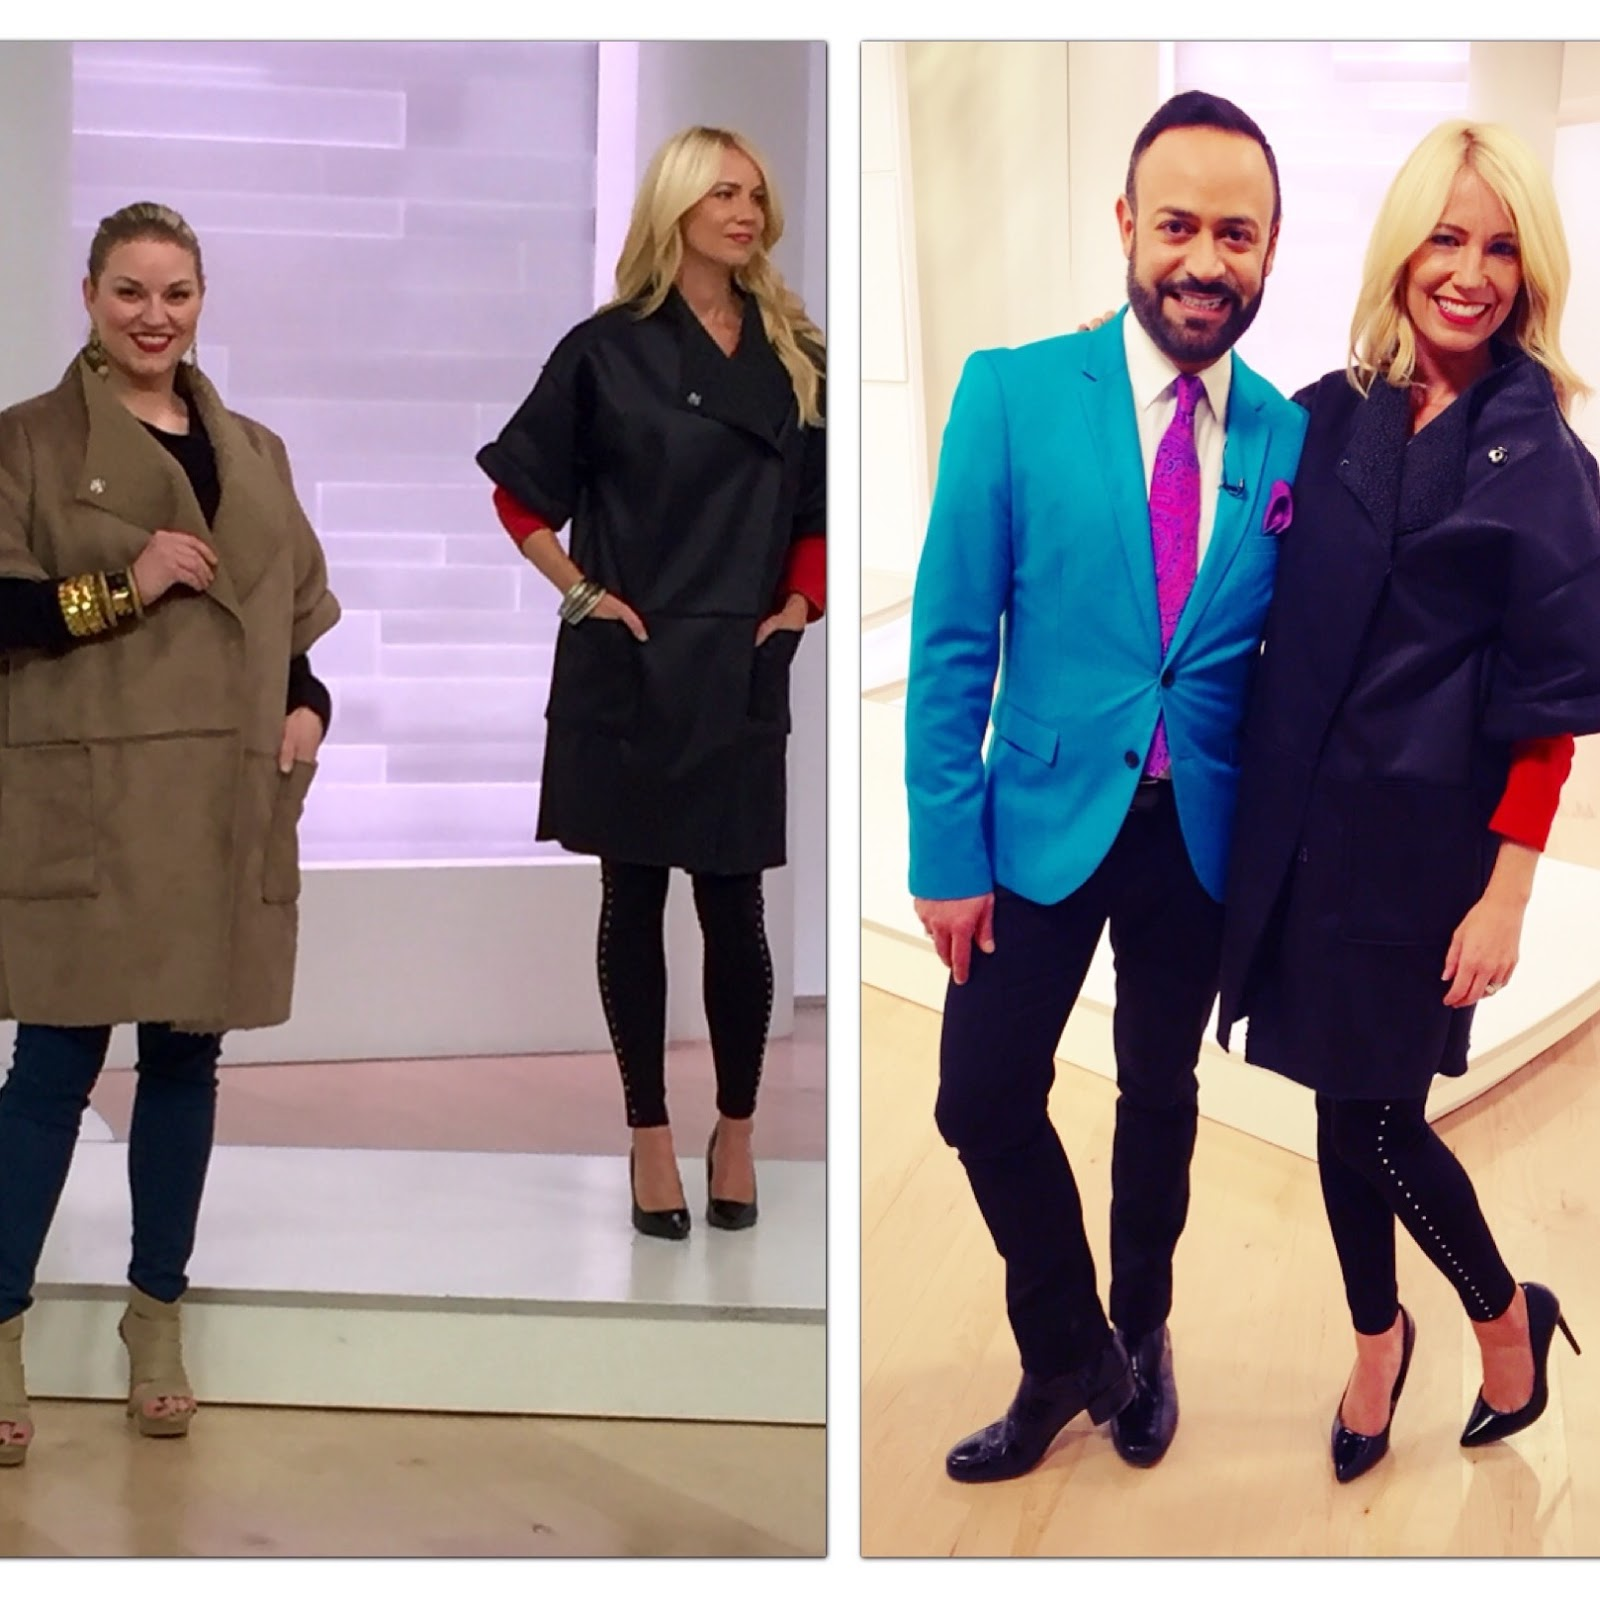 acd20864a4a1f Models wearing the NV Nick Verreos EVINE Live Faux Suede and Shearling